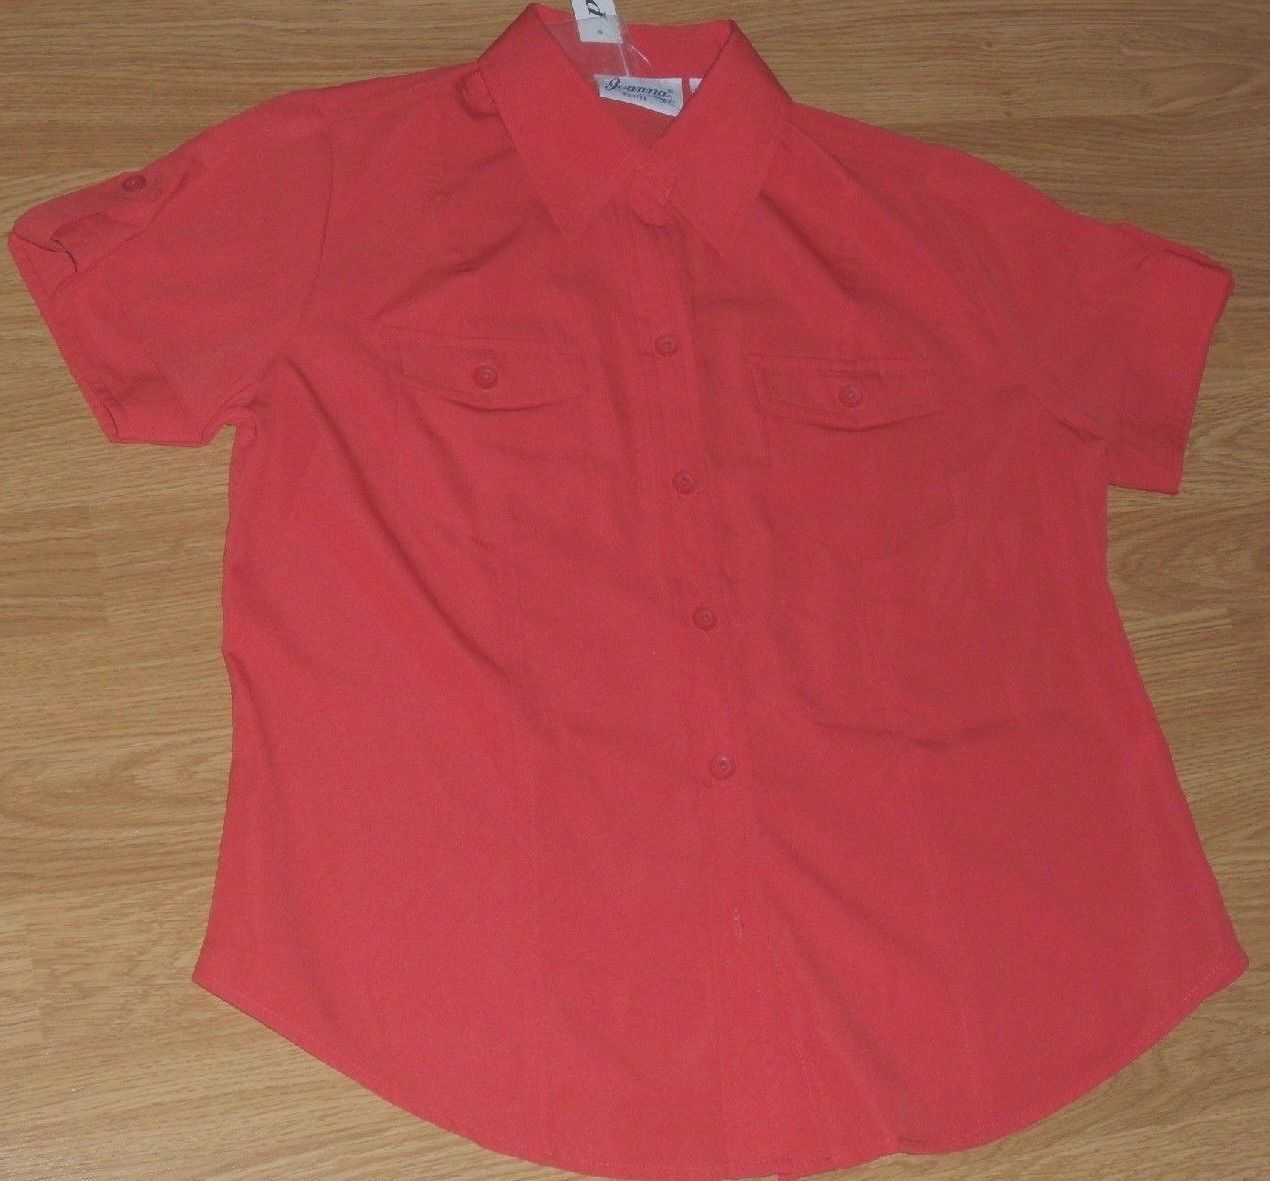 JOANNA BLOUSE SIZE S RED GREEN YELLOW BUTTON FRONT LIGHTWEIGHT NWT